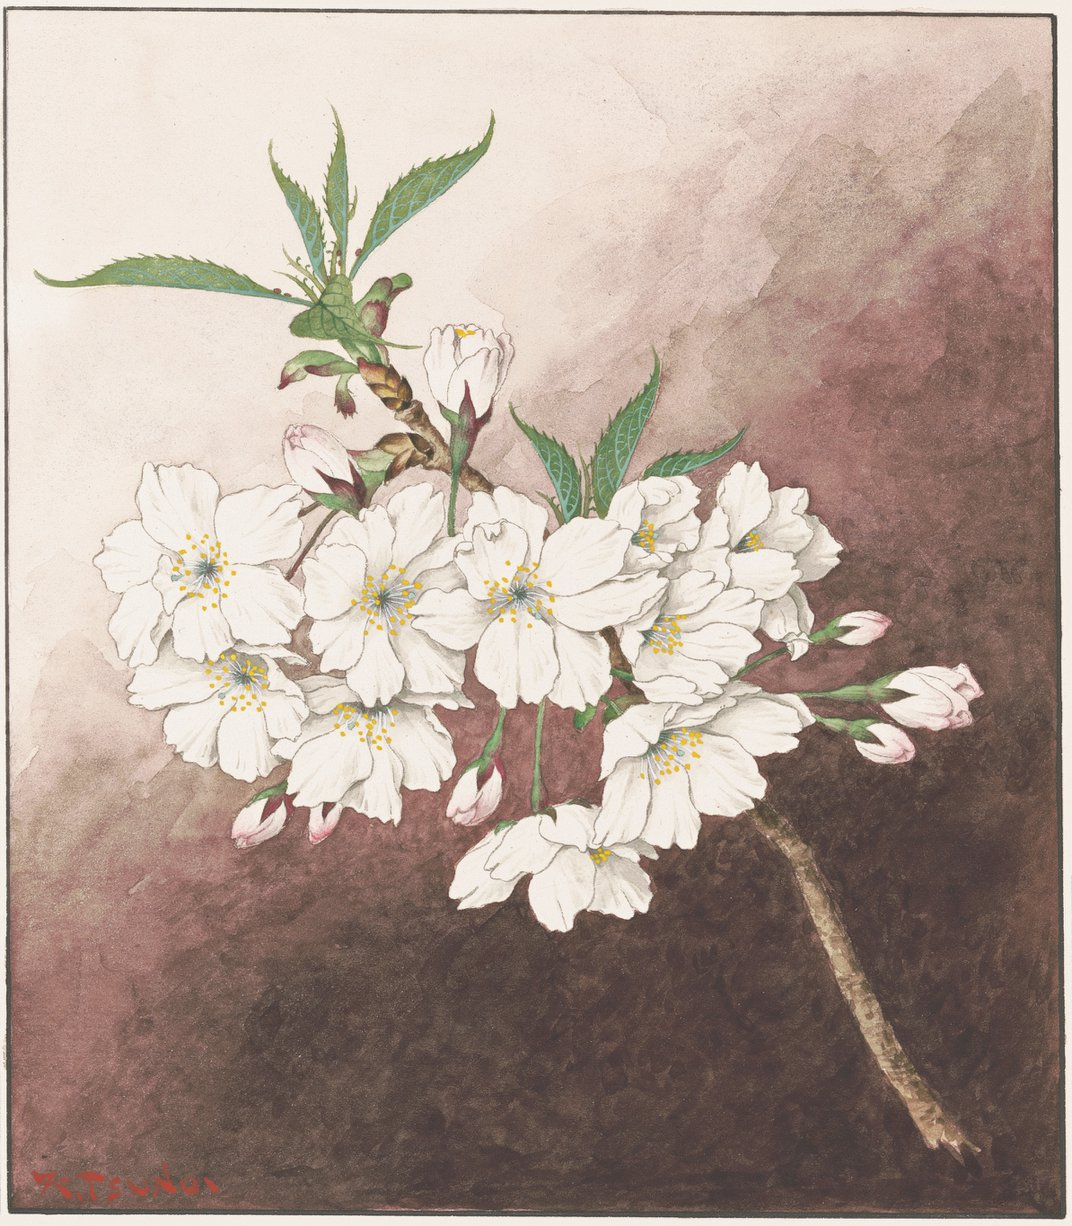 Not All Cherry Blossoms Are the Same